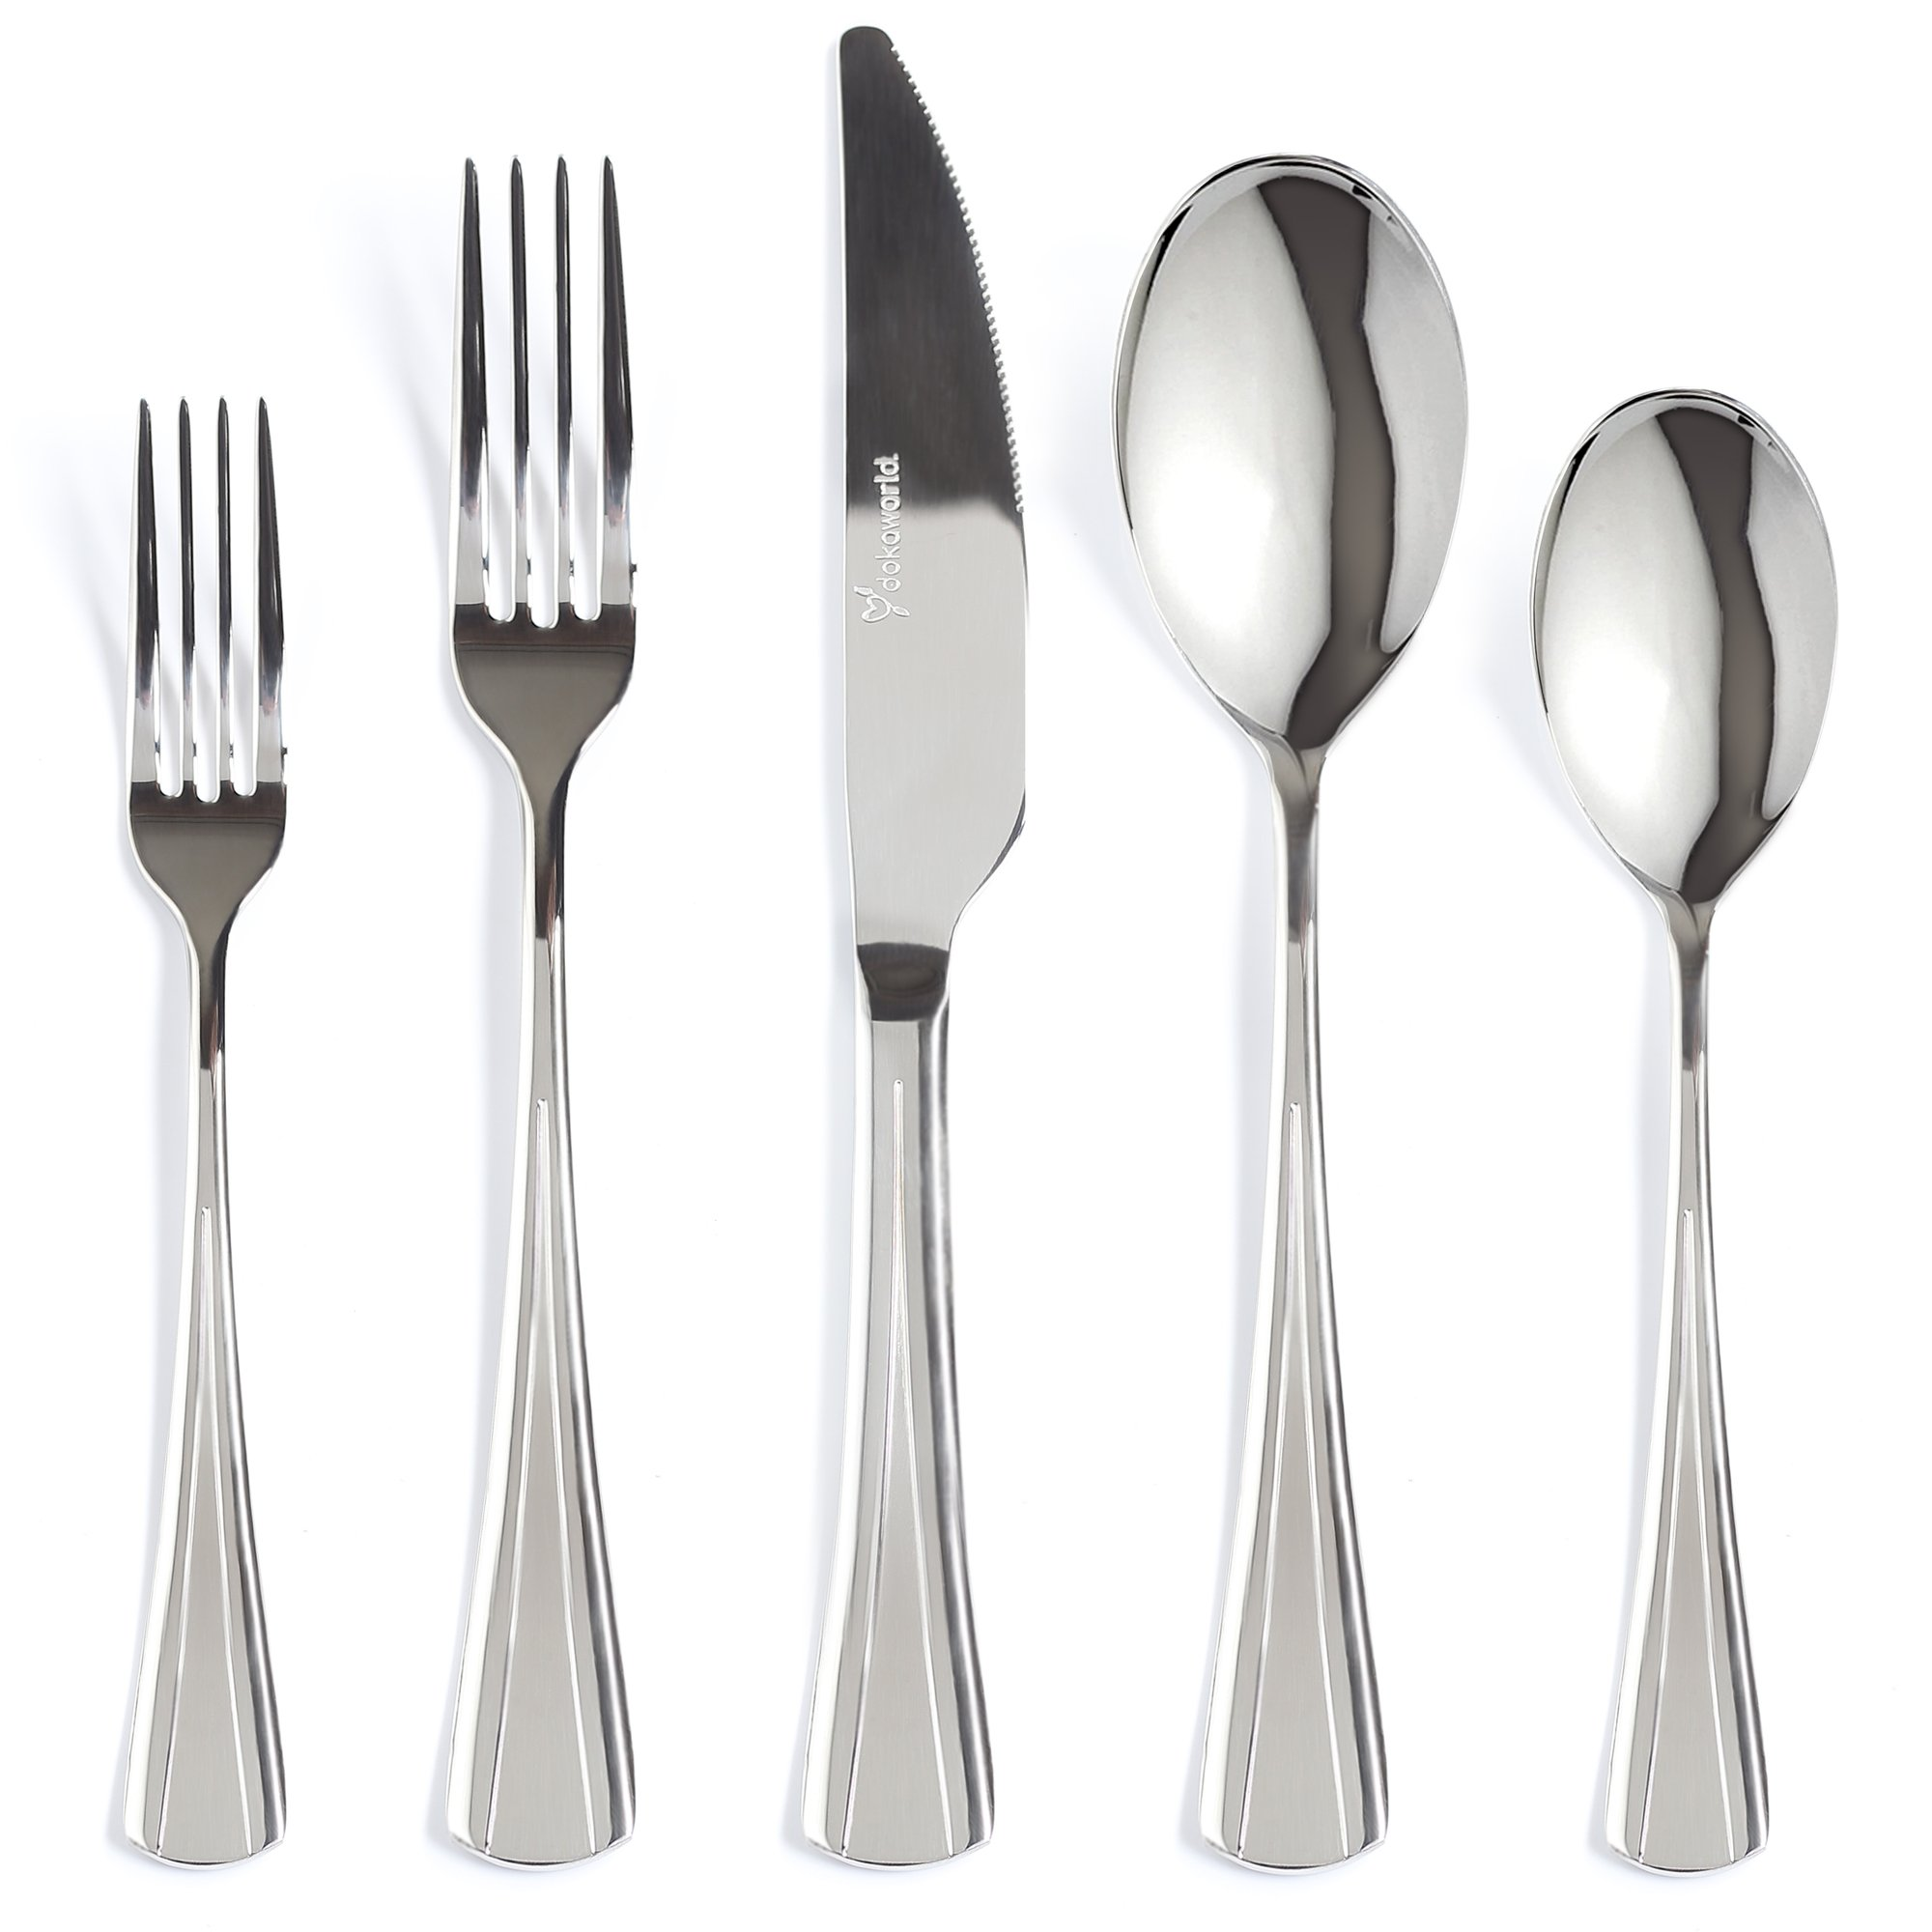 Silverware Set 18/10 Stainless Steel - Elegant Flatware Set of 40 Pieces - Eating Utensils for 8 People - Modern Cutlery Kit of Dinner Forks - Spoons Knives Dessert Forks and Spoons (D - Bird Tale)